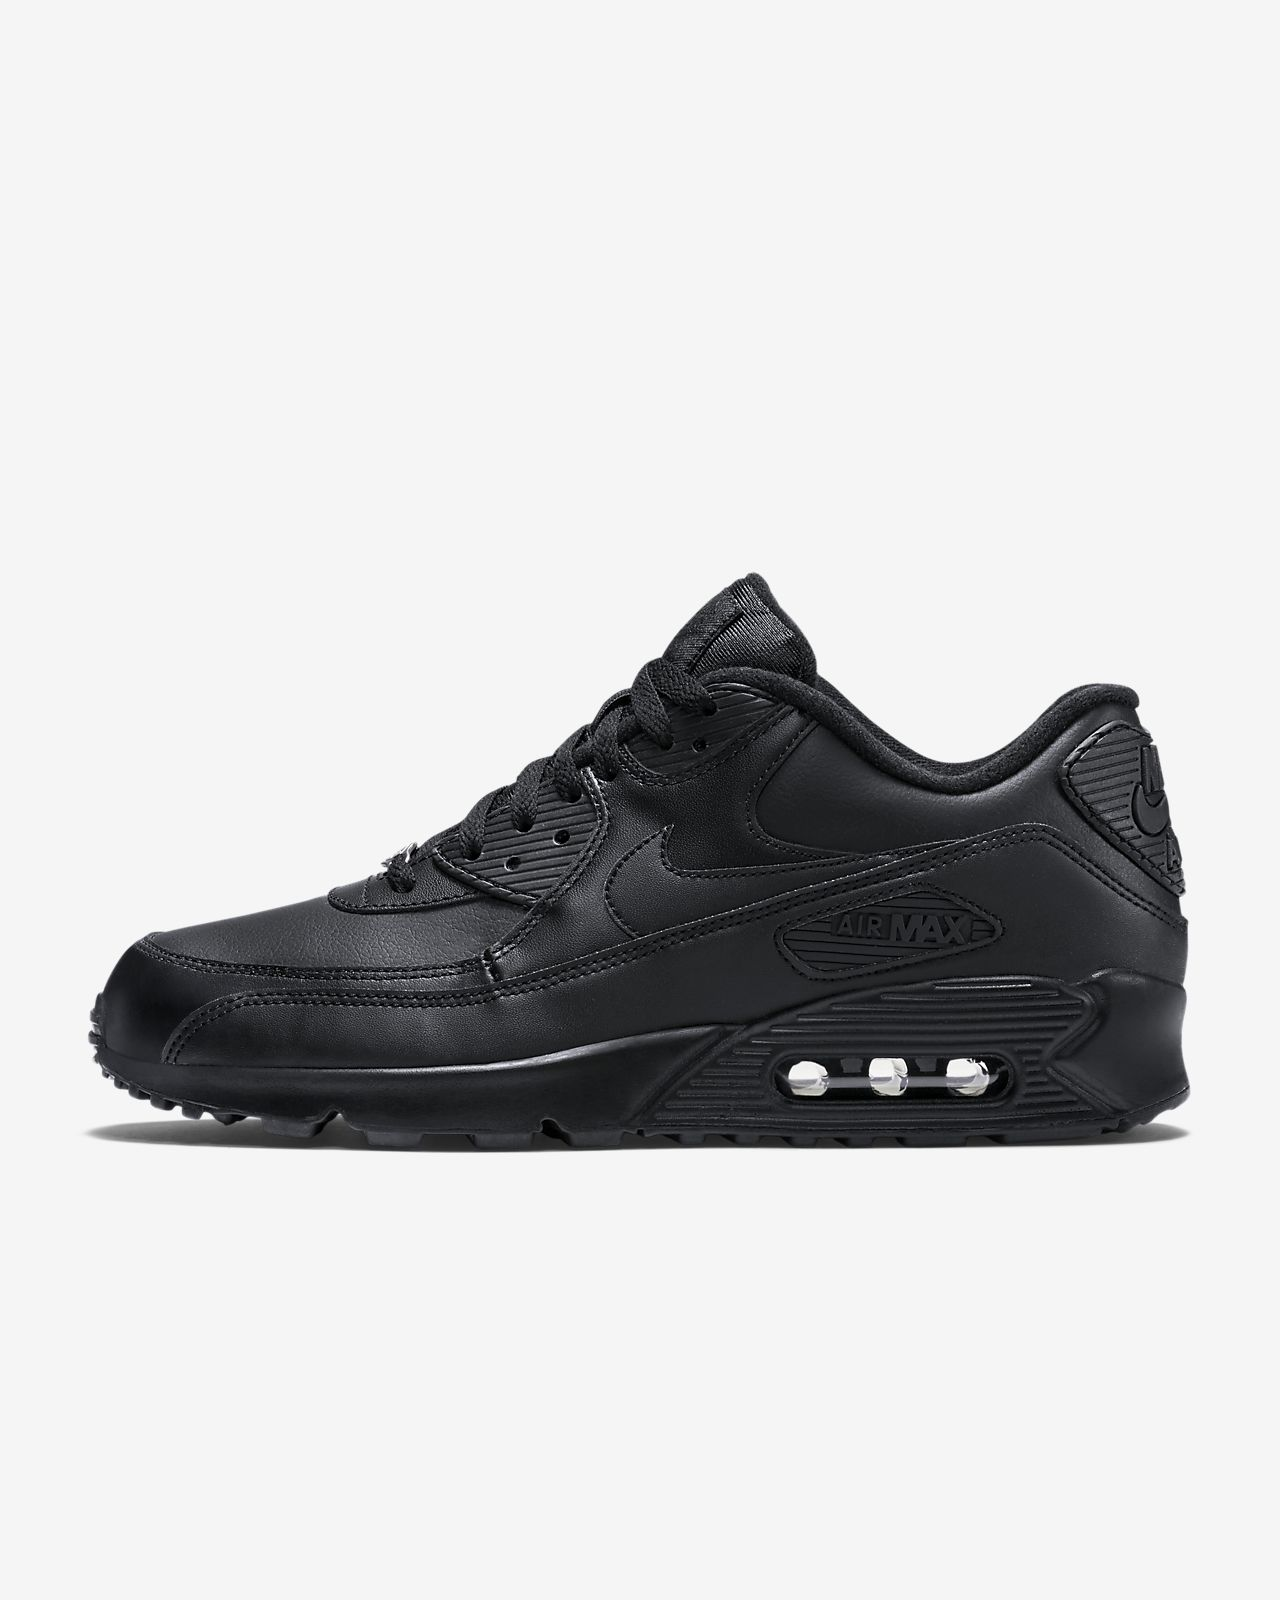 53faf0aef172 Nike Air Max 90 Leather Men s Shoe. Nike.com GB